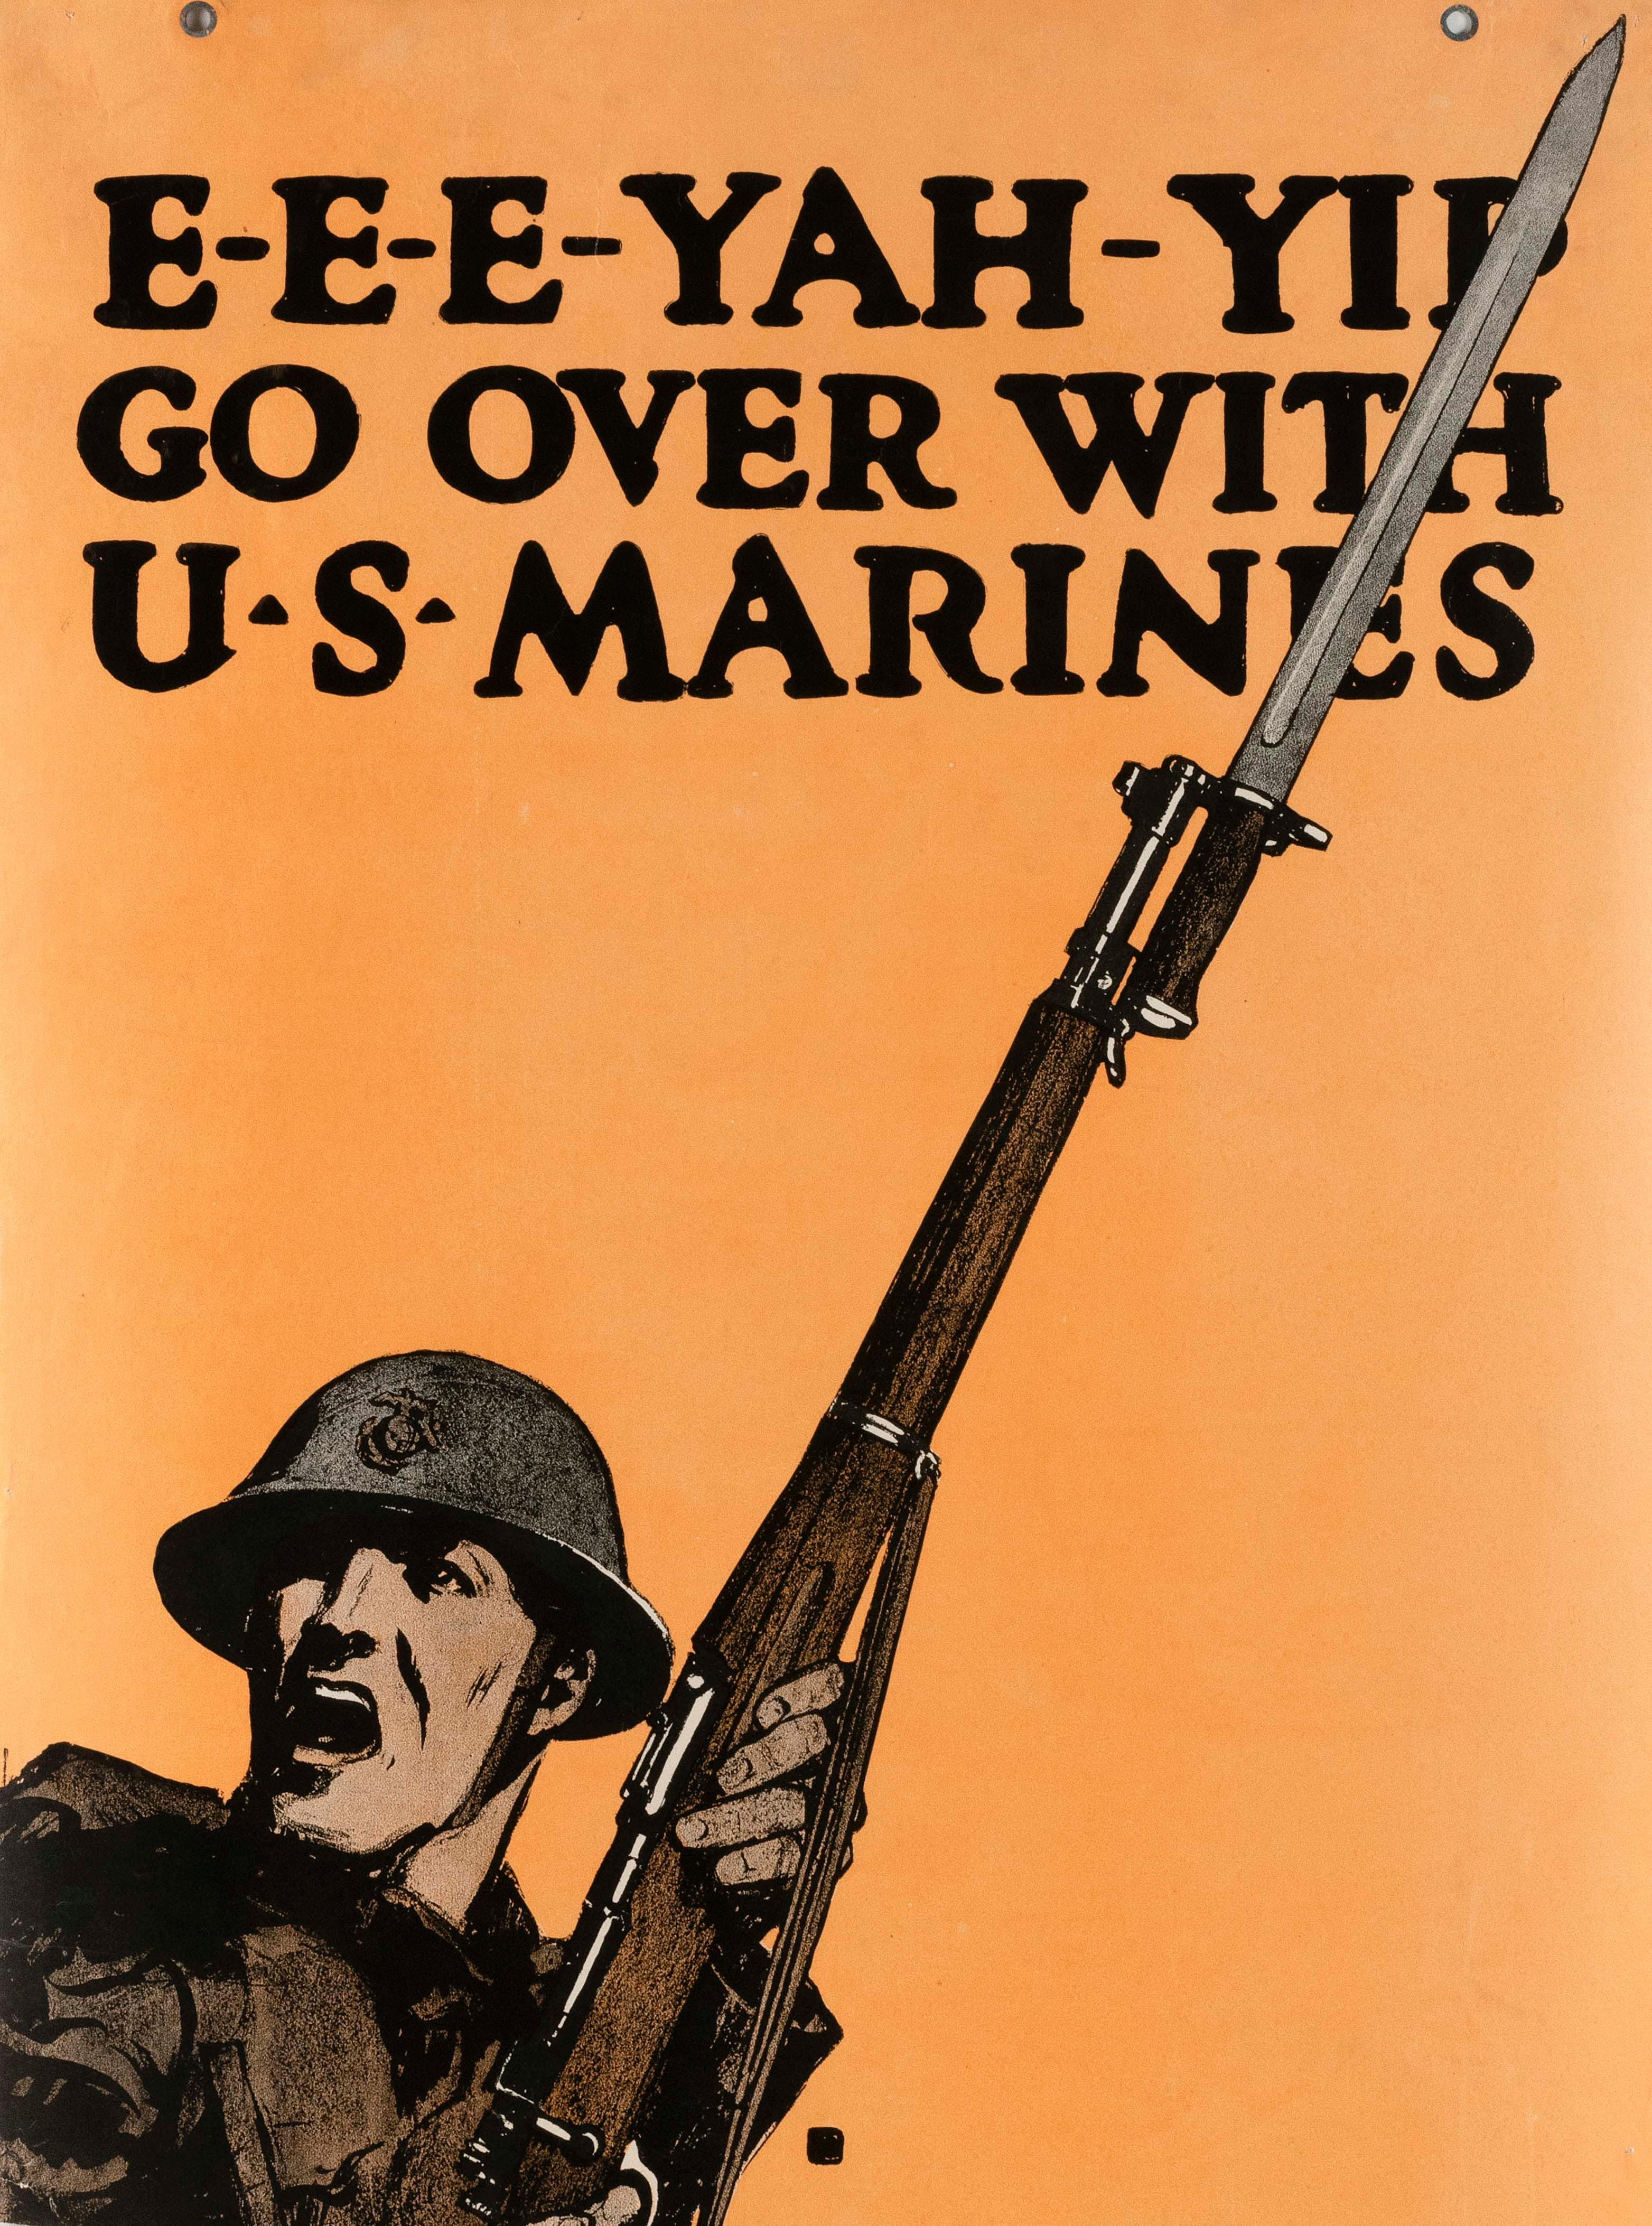 """""""E-E-E-YAH-YIP GO OVER WITH U.S. MARINES"""" WORLD WAR I POSTER By Charles B. Falls. Depicts a Marine raising his rifle and bayonet. 28..."""